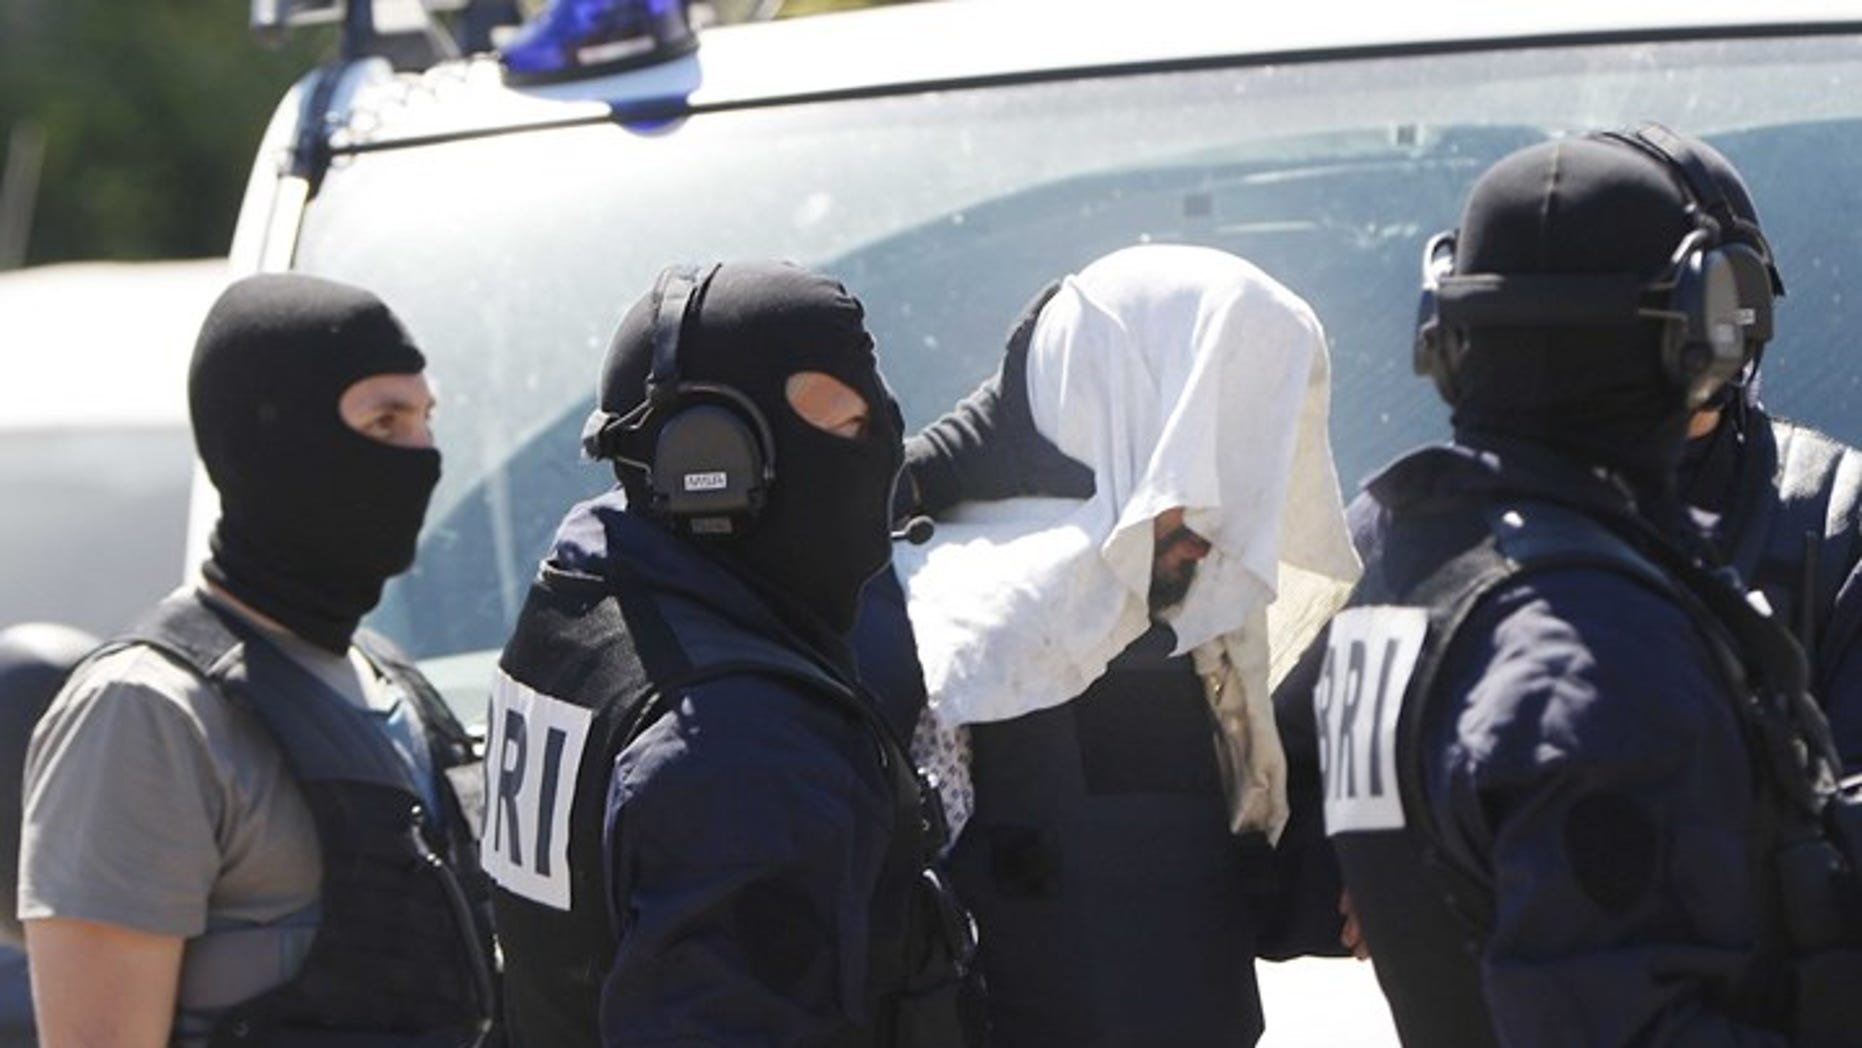 Yassin Salhi after his arrest in June, with a towel covering his head.